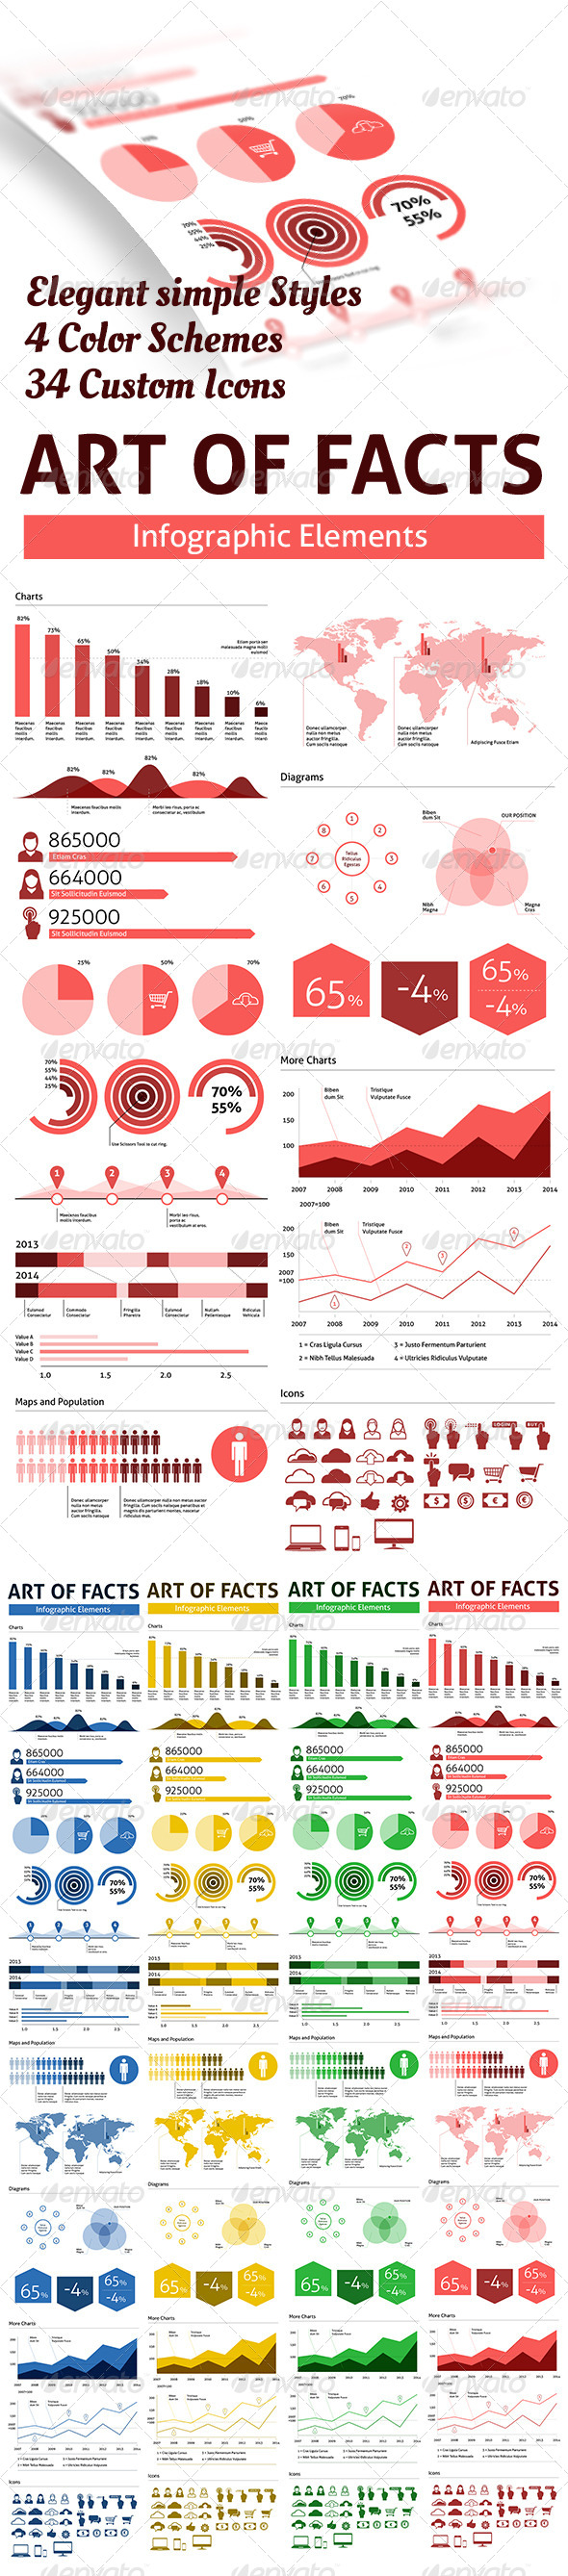 Arts of Facts - Clean Infographic Elements - Infographics